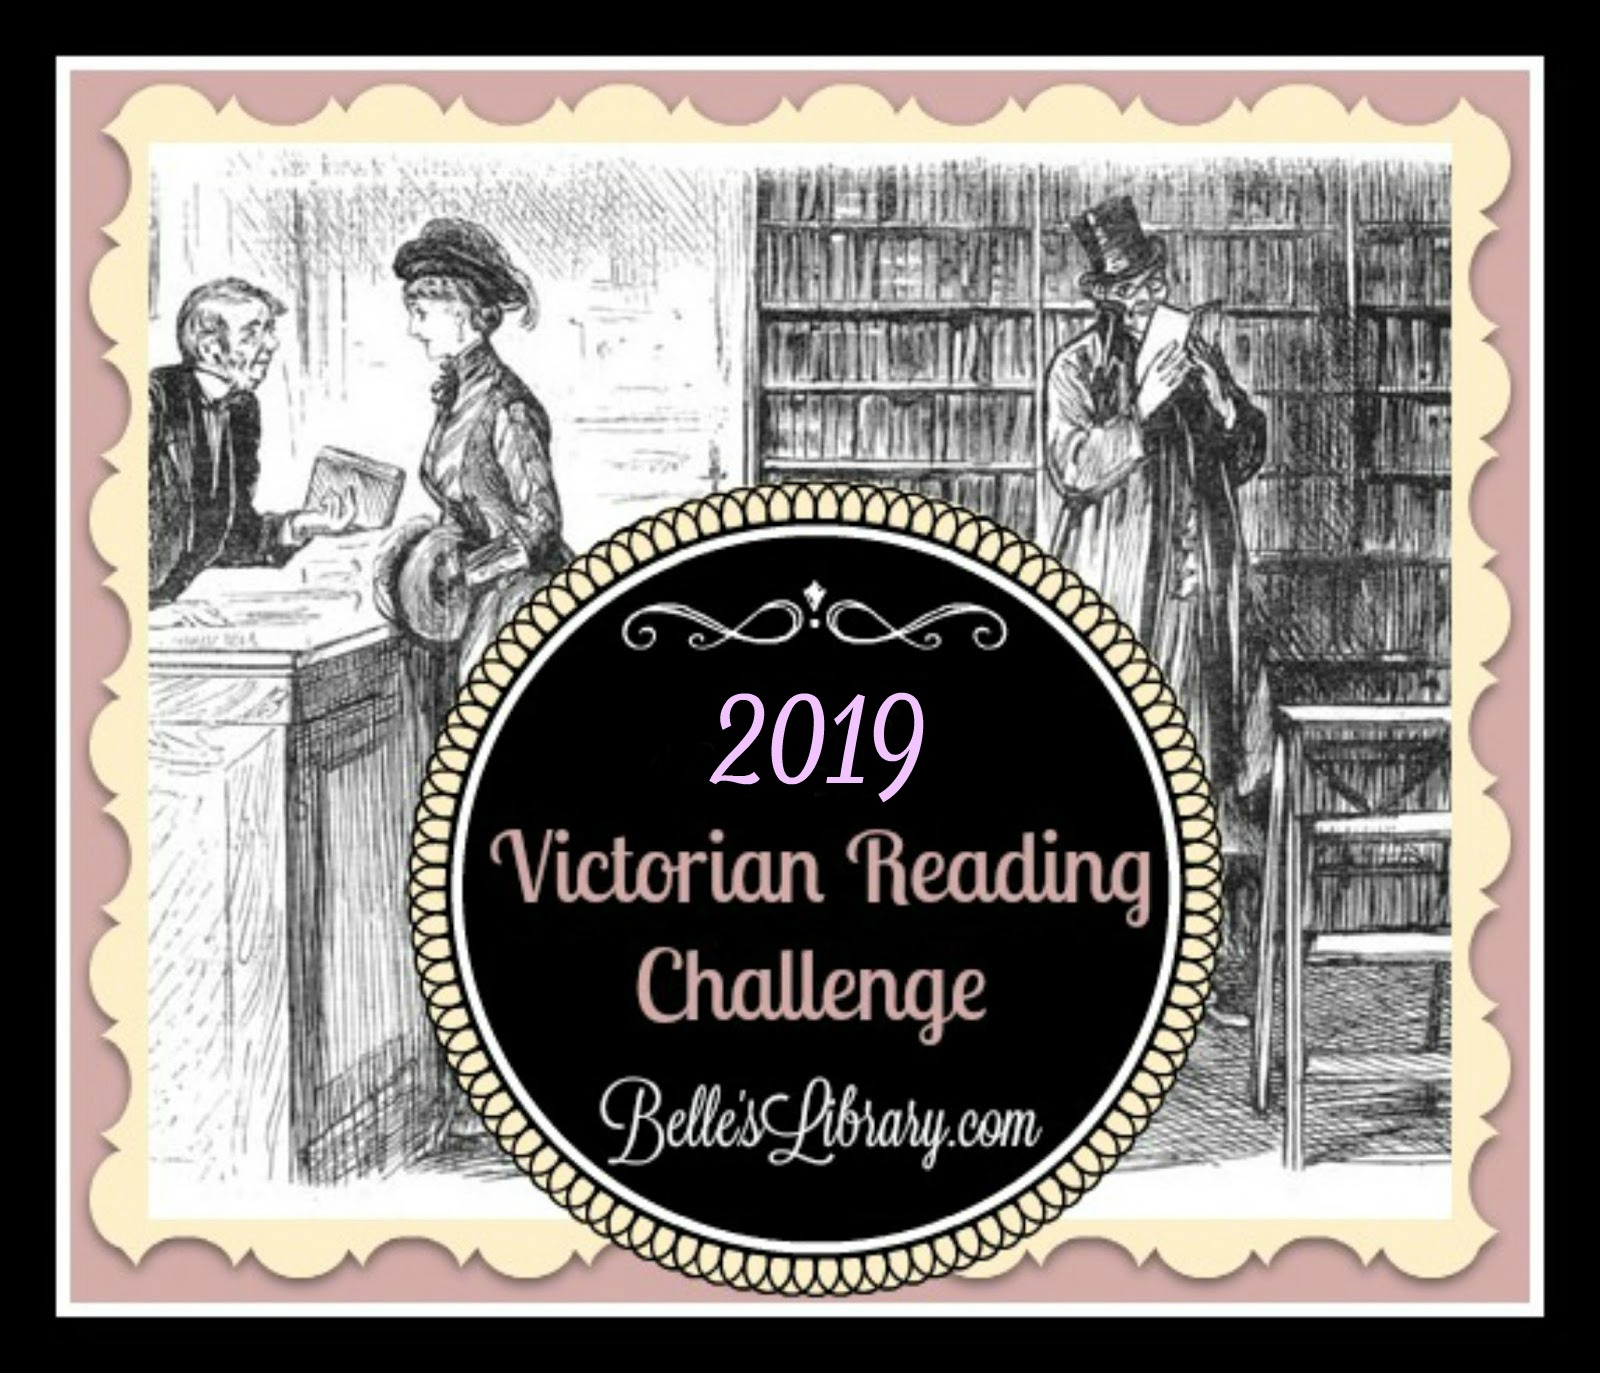 Check out the Victorian Reading Challenge!